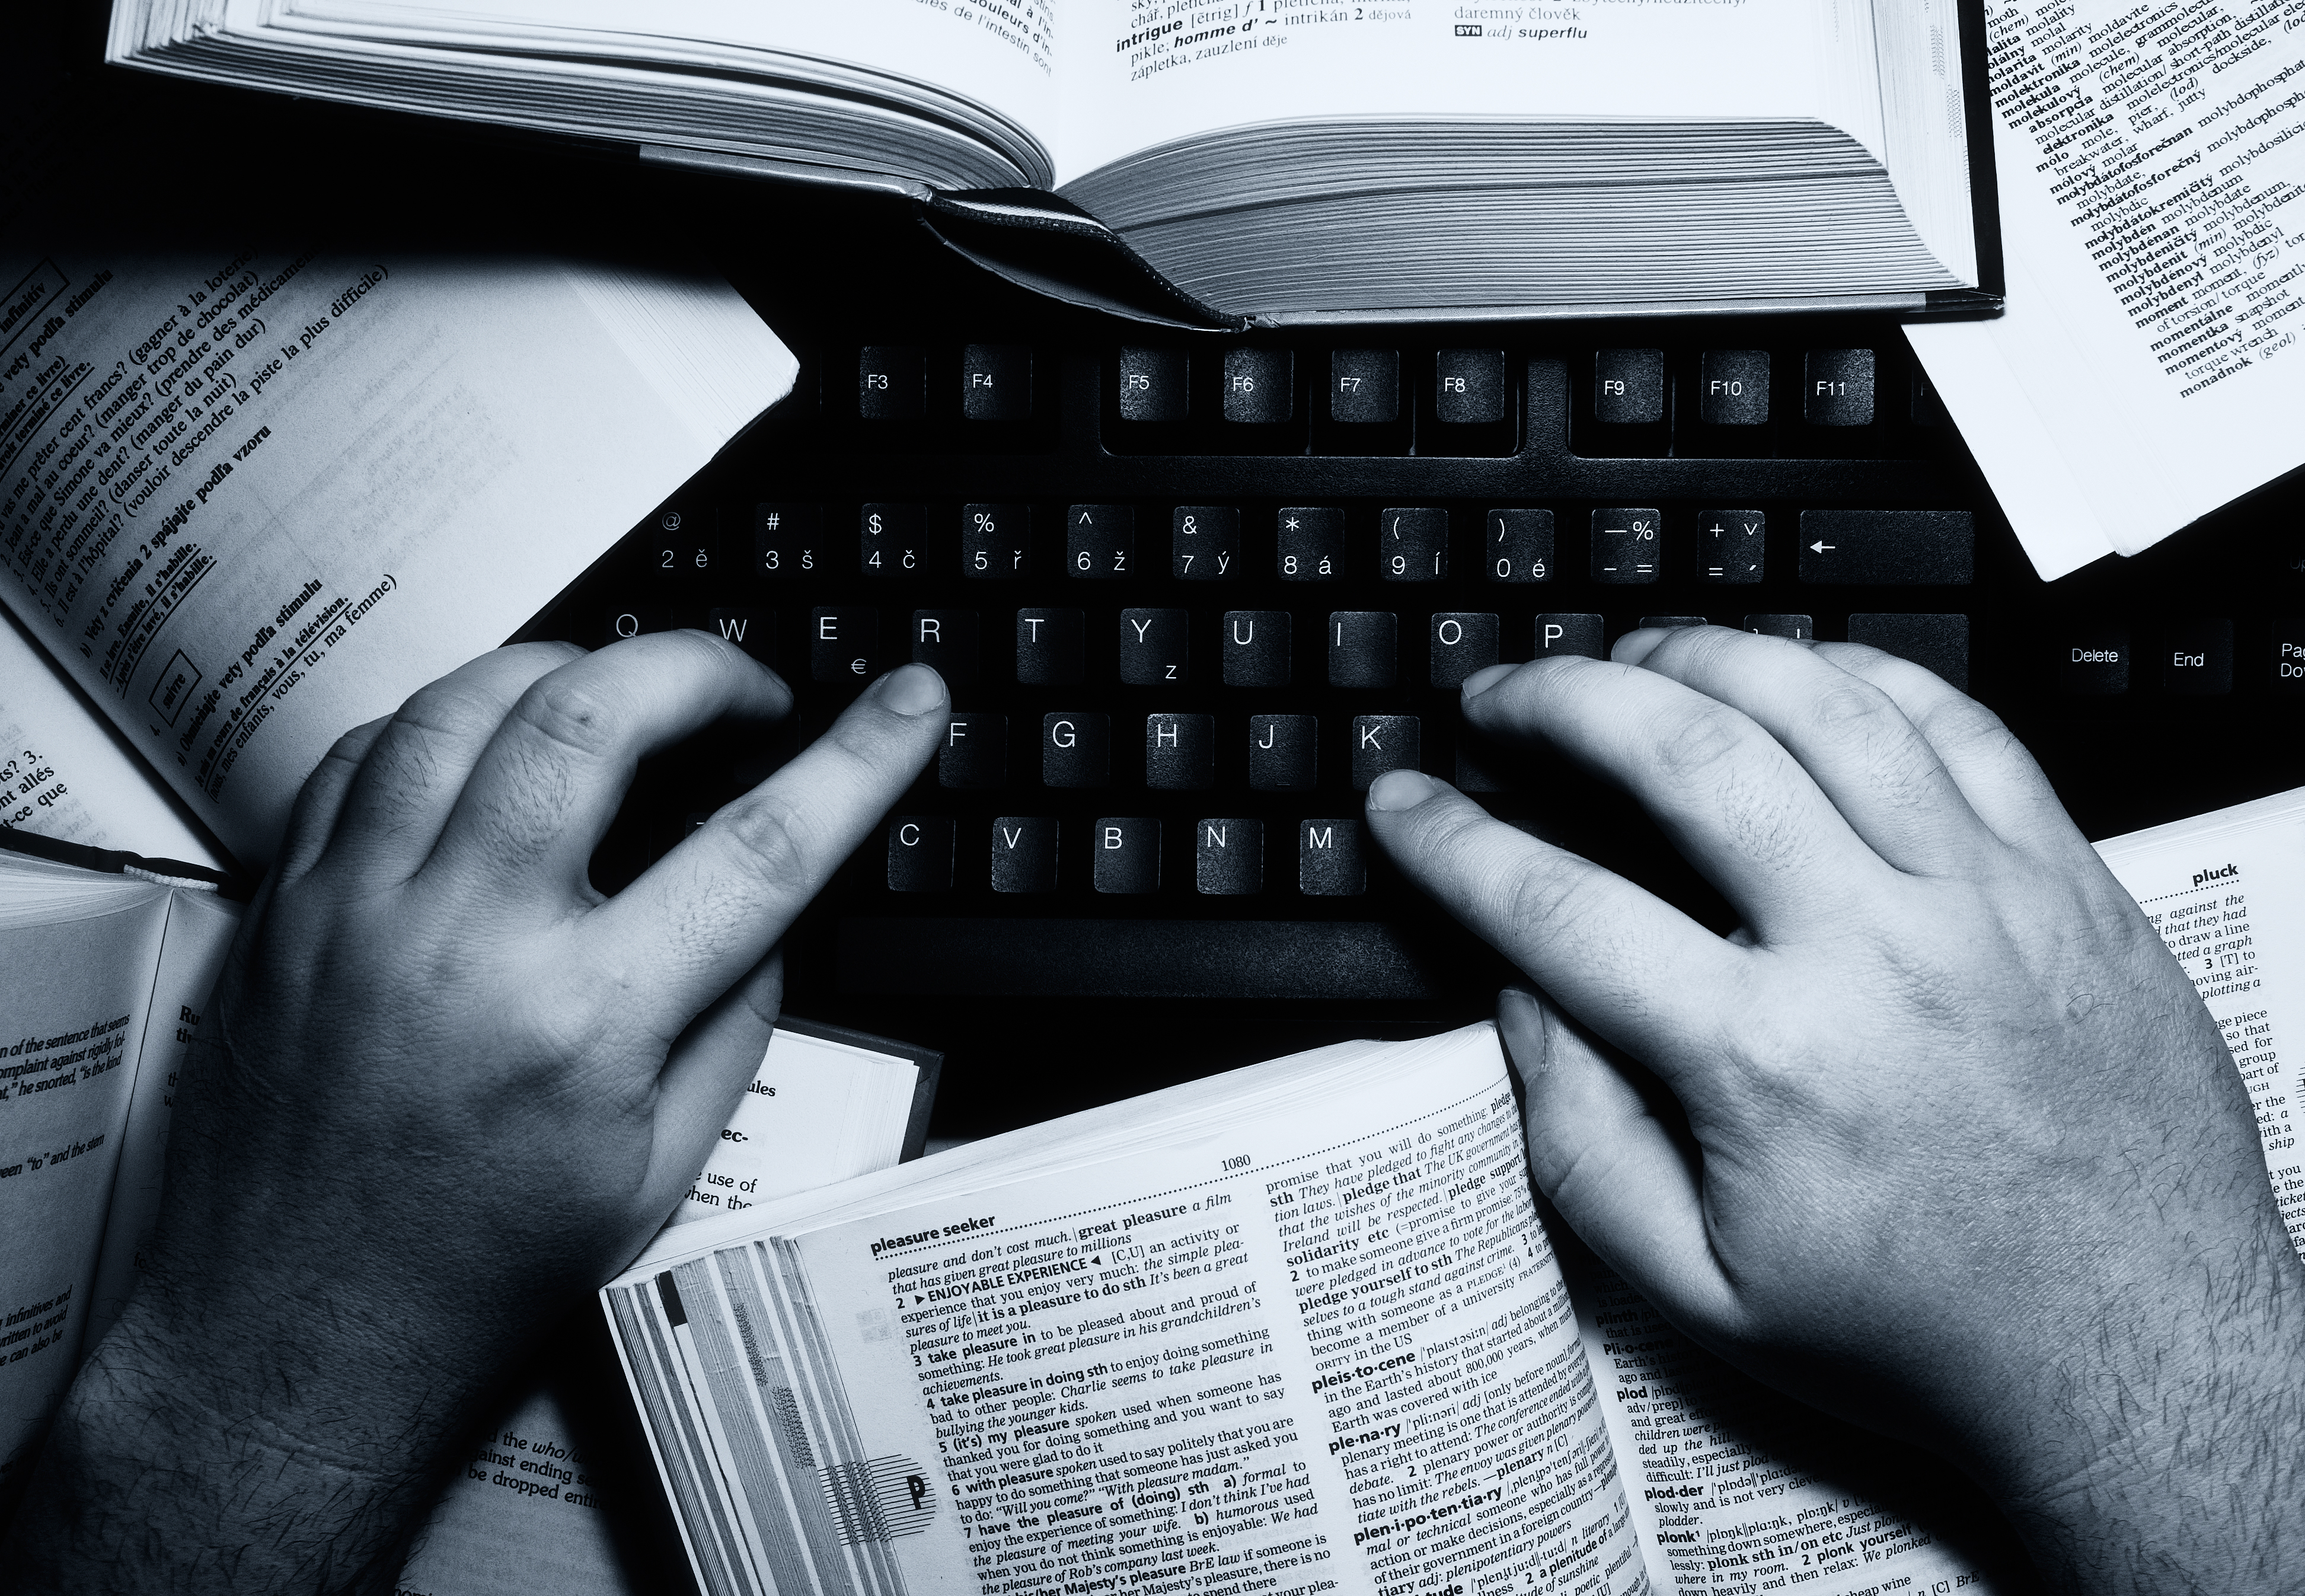 15 Expert tips to writing the perfect manuscript